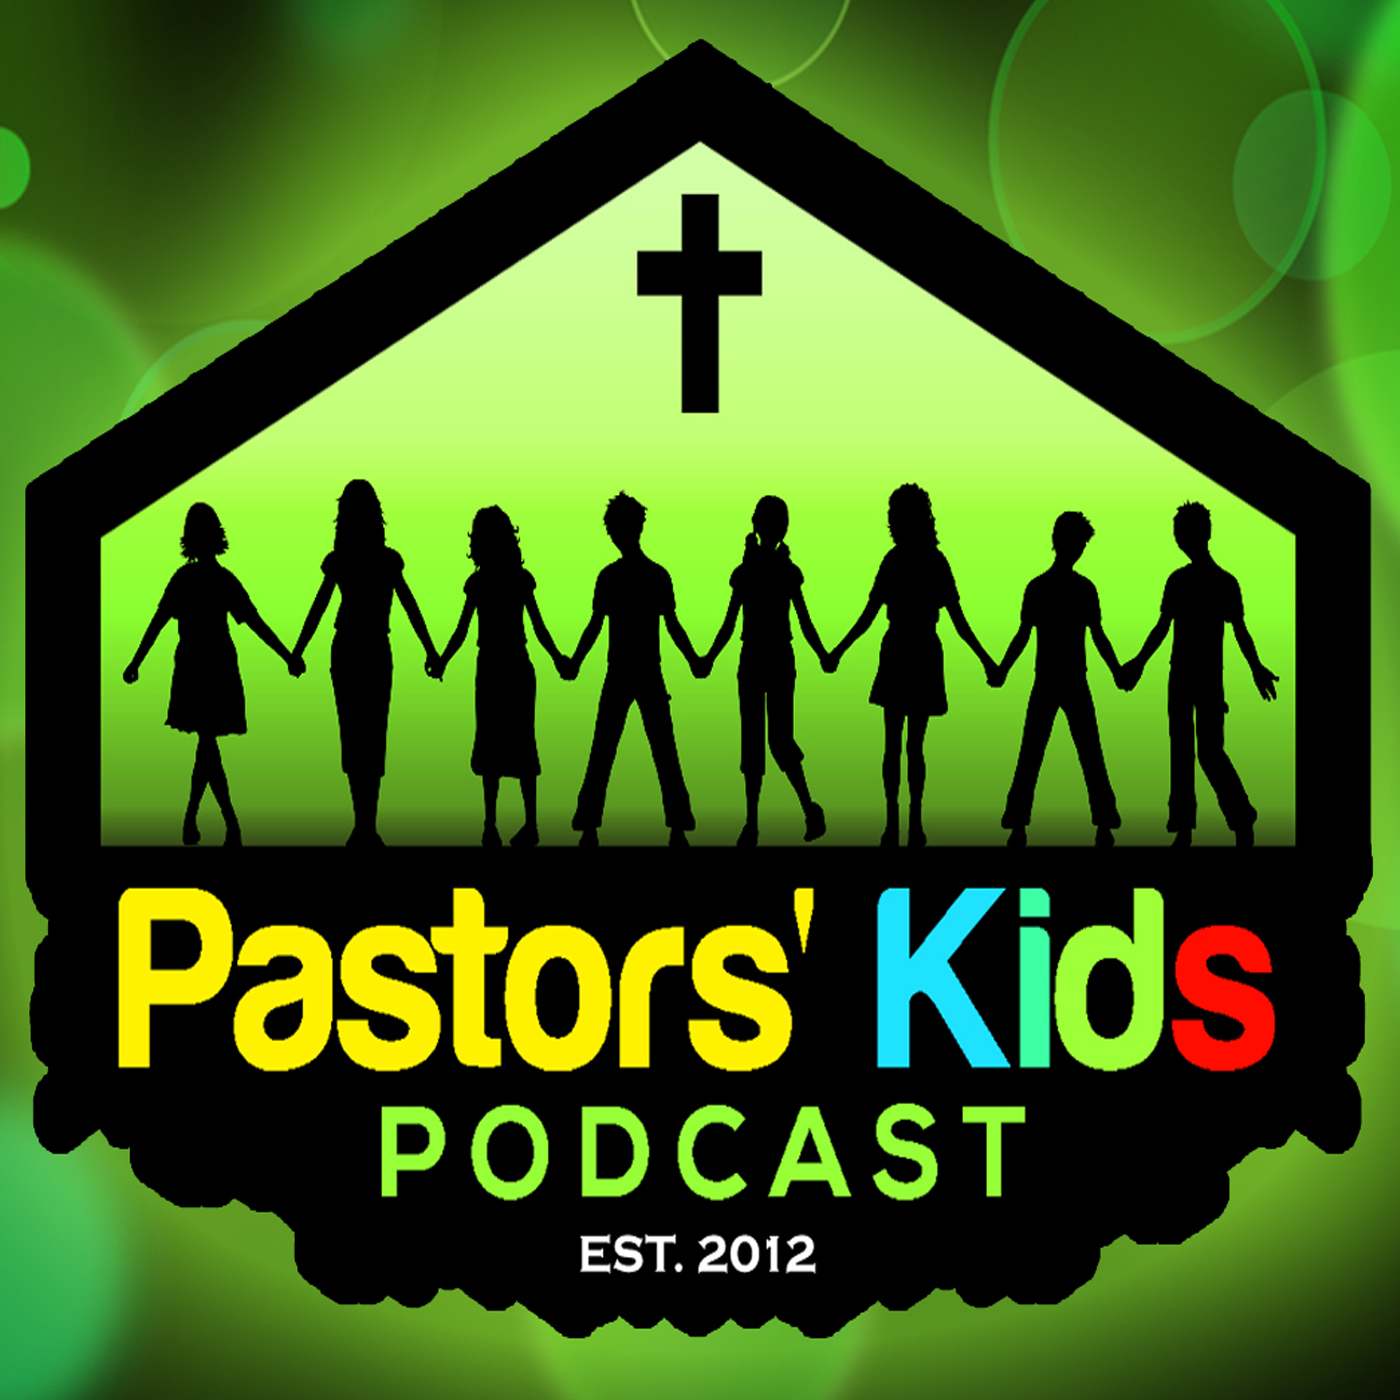 podcast – The Pastors Kids Podcast